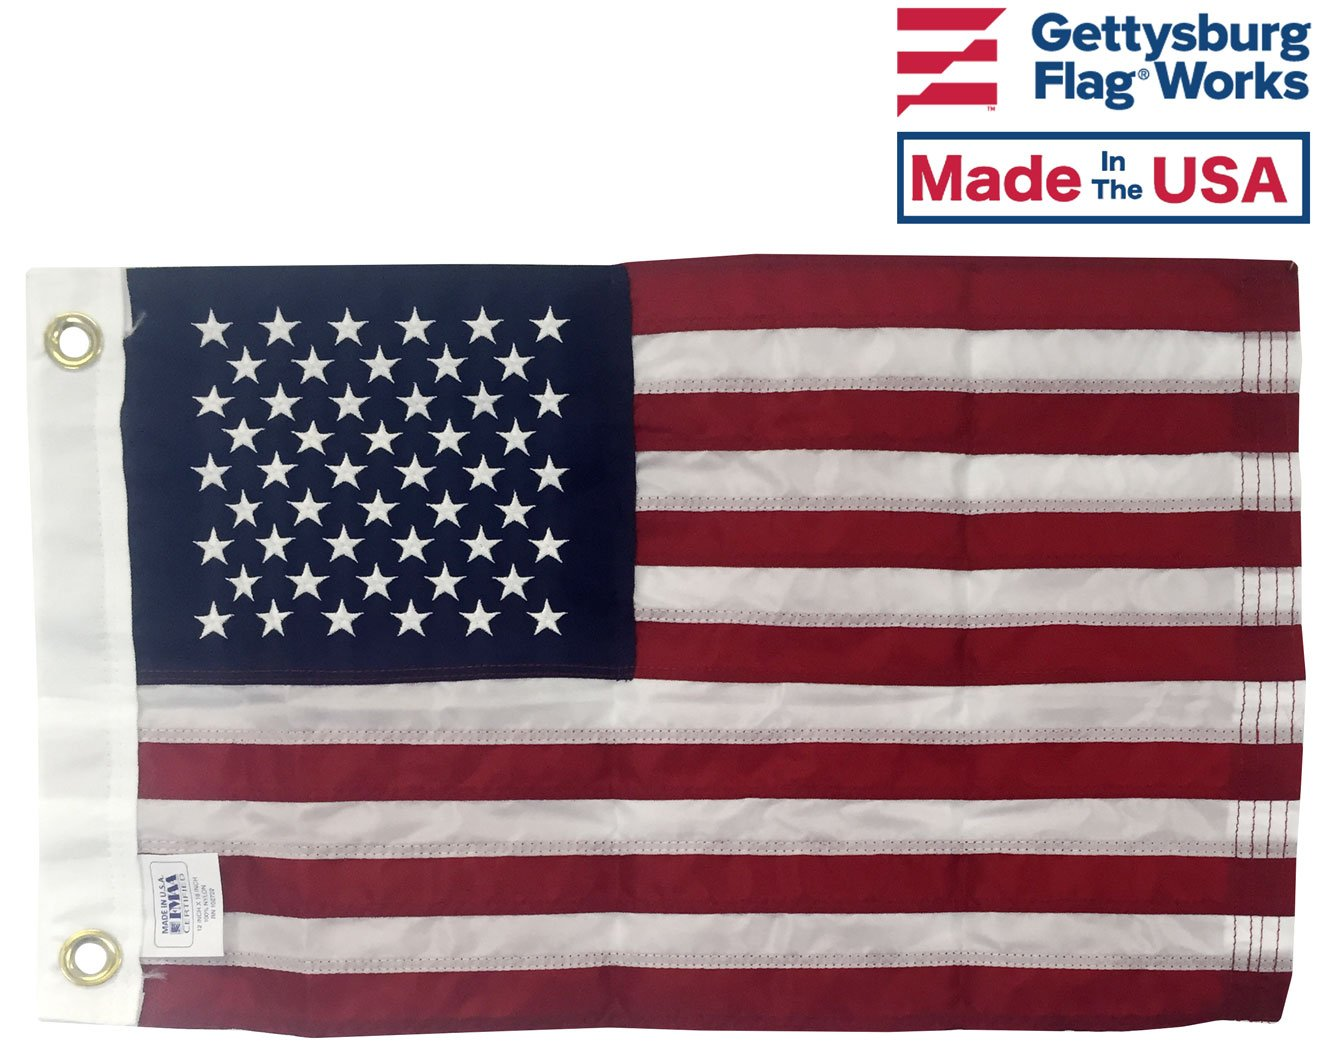 12x18'' American Boat Flag - Marine Grade US Flag, Embroidered All Weather Nylon with Reinforced Stitching - for outdoor use, Made In USA